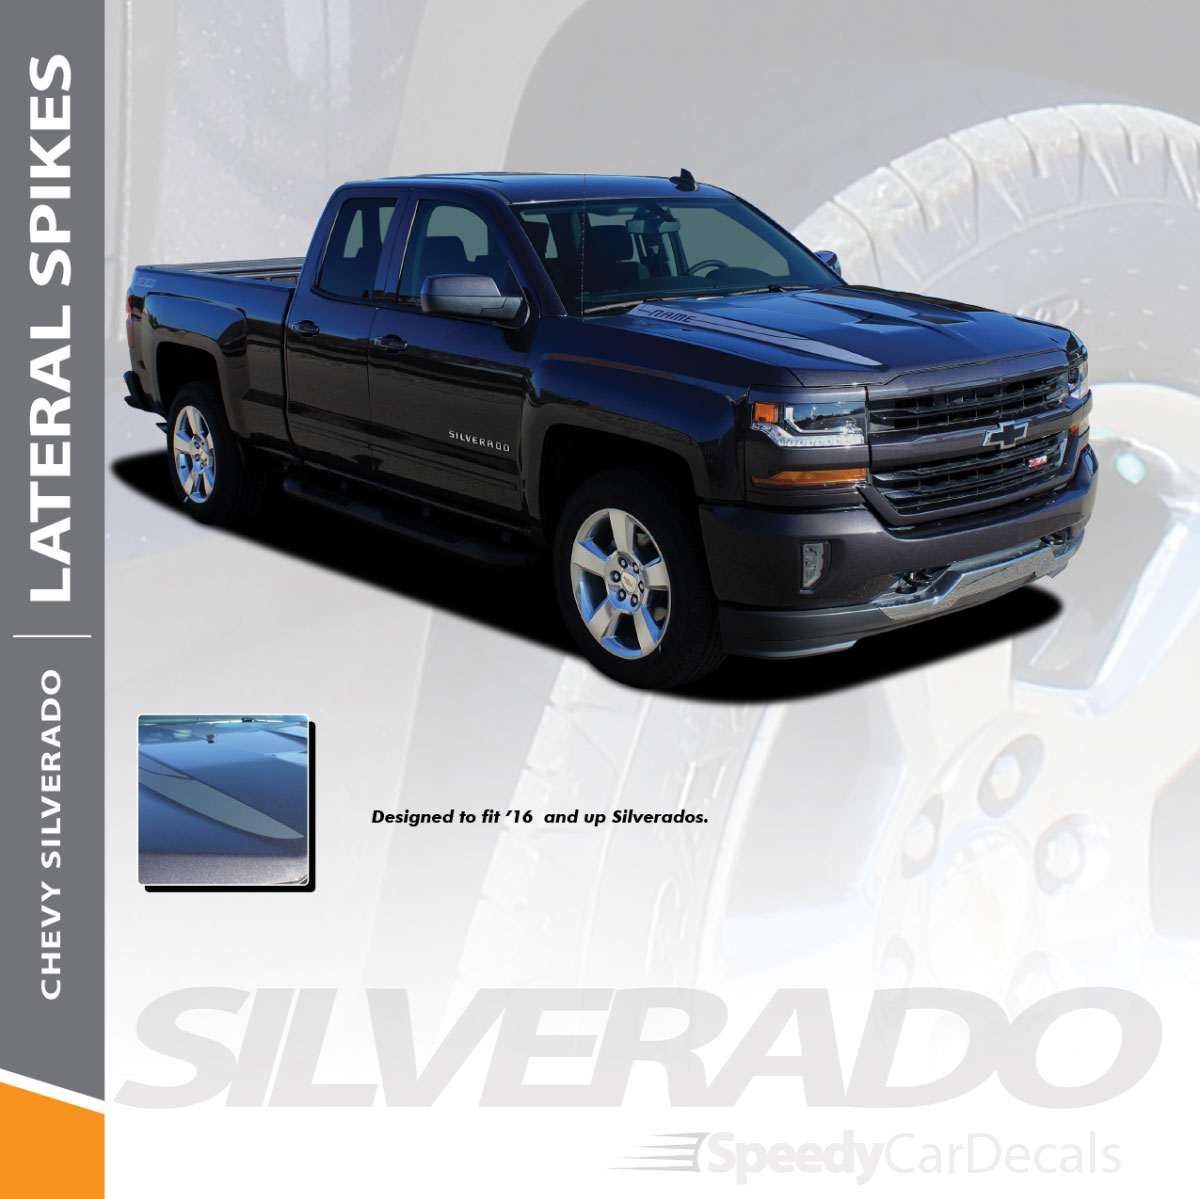 2017 Chevy Silverado Hood Decals Lateral Spikes 3m 2016 2018 Wet And